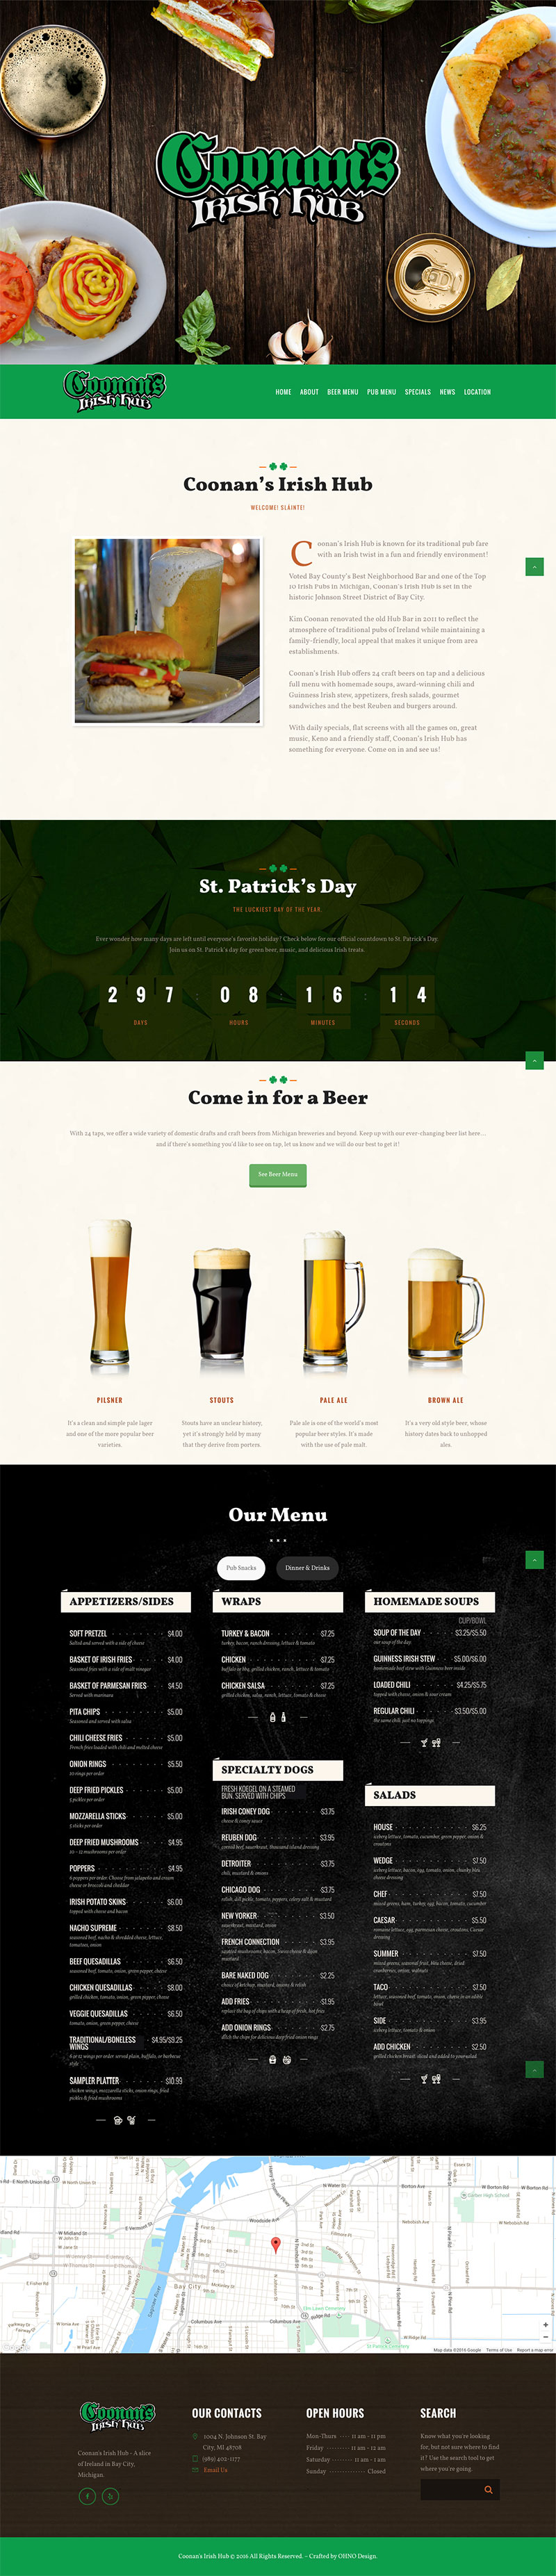 Coonan's Irish Pub homepage